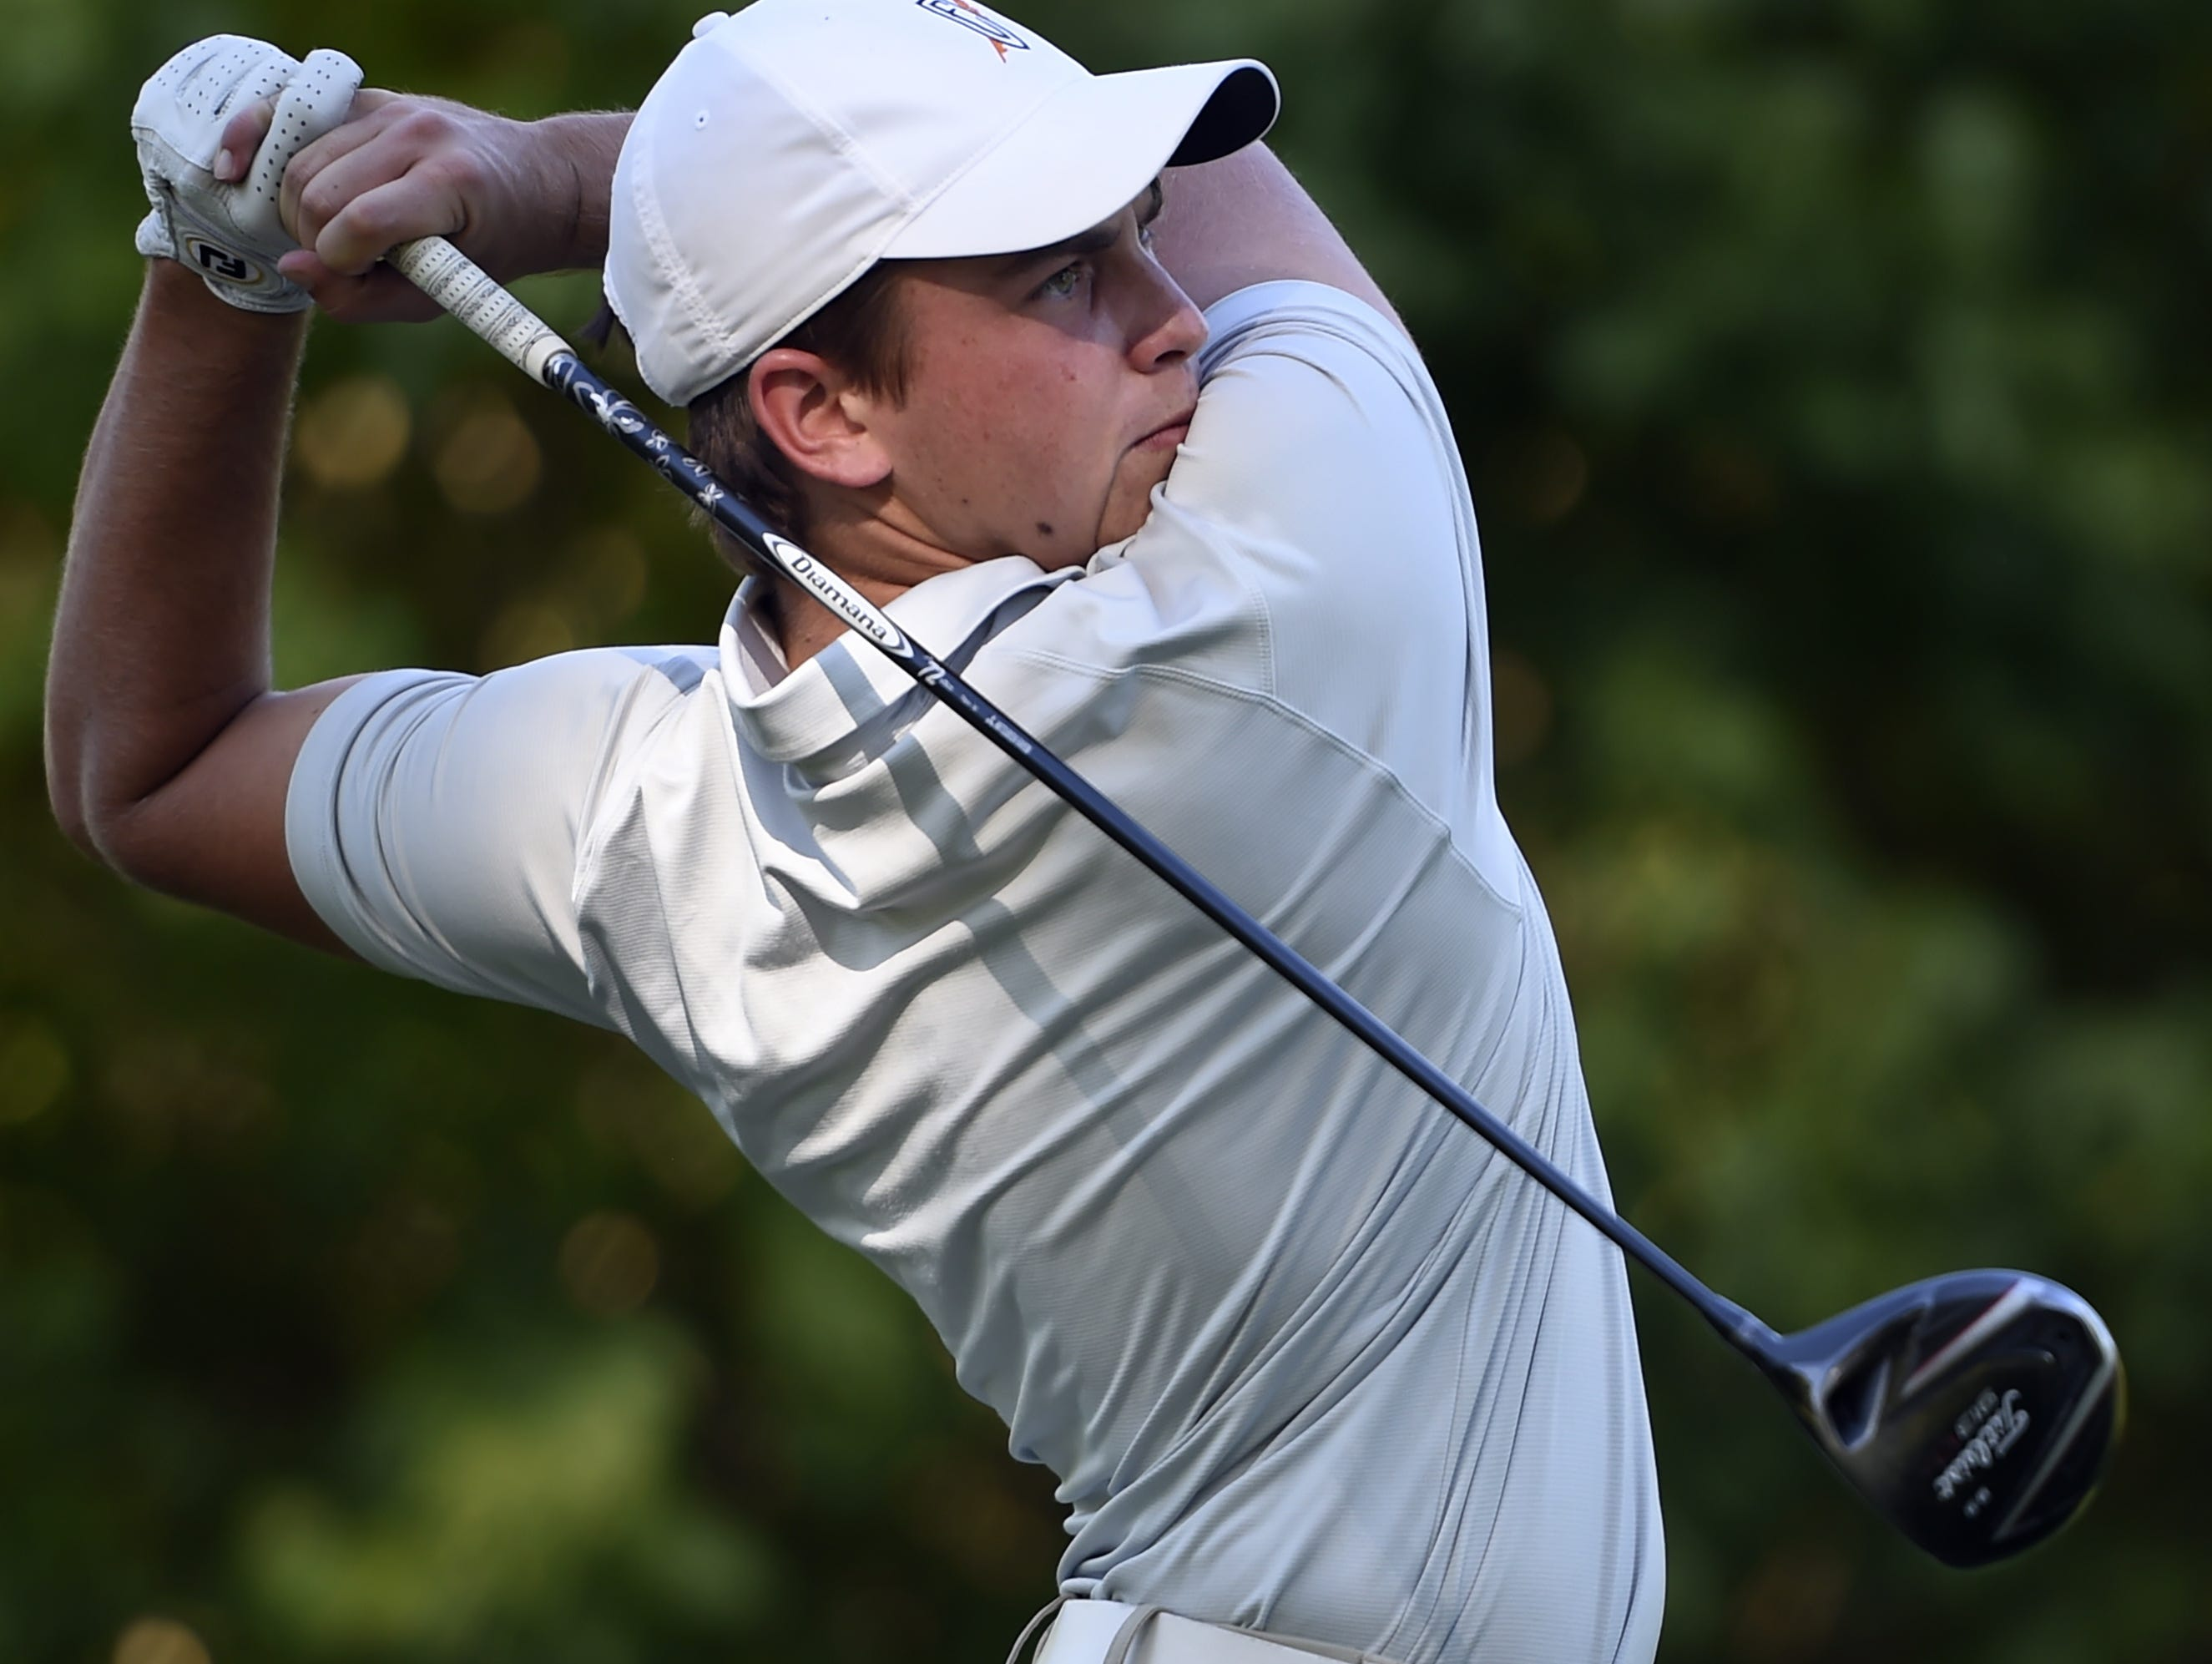 Ensworth's Brock Ochsenreiter will try to defend his DII-AA boys state golf title.